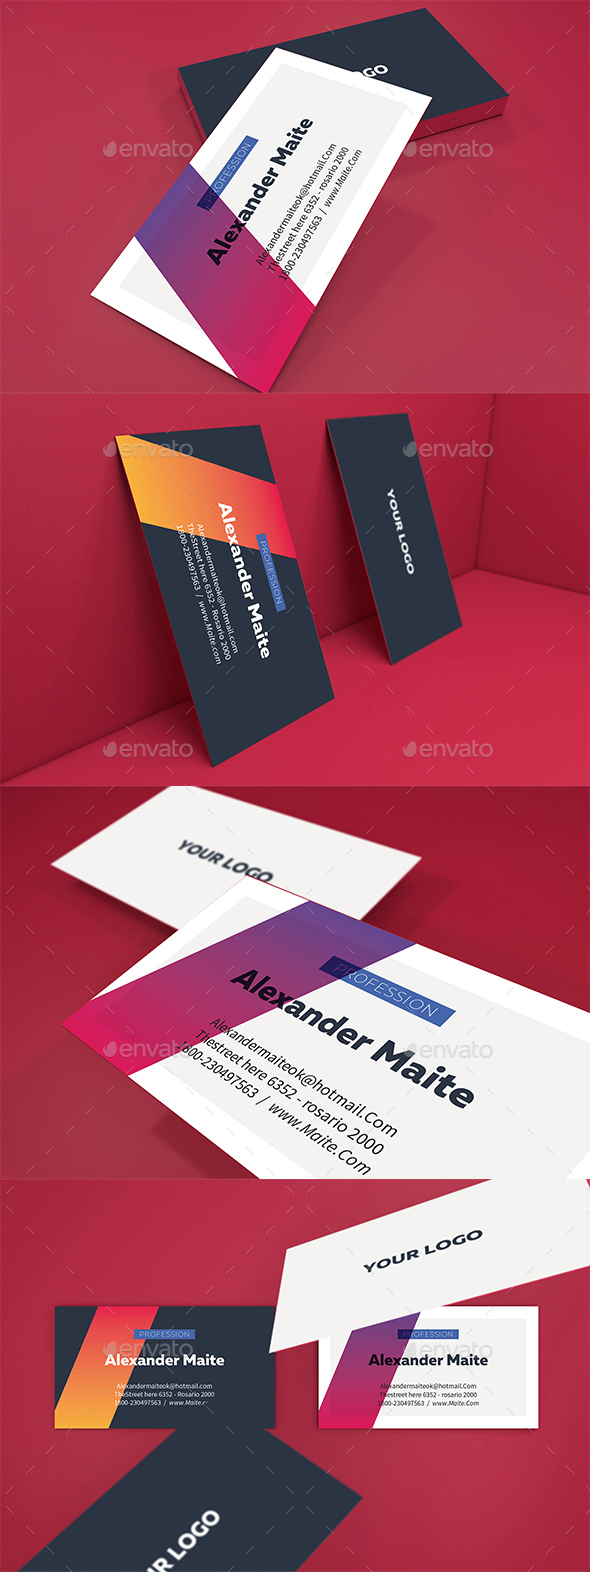 GraphicRiver Gradient Business Card Template 20670592